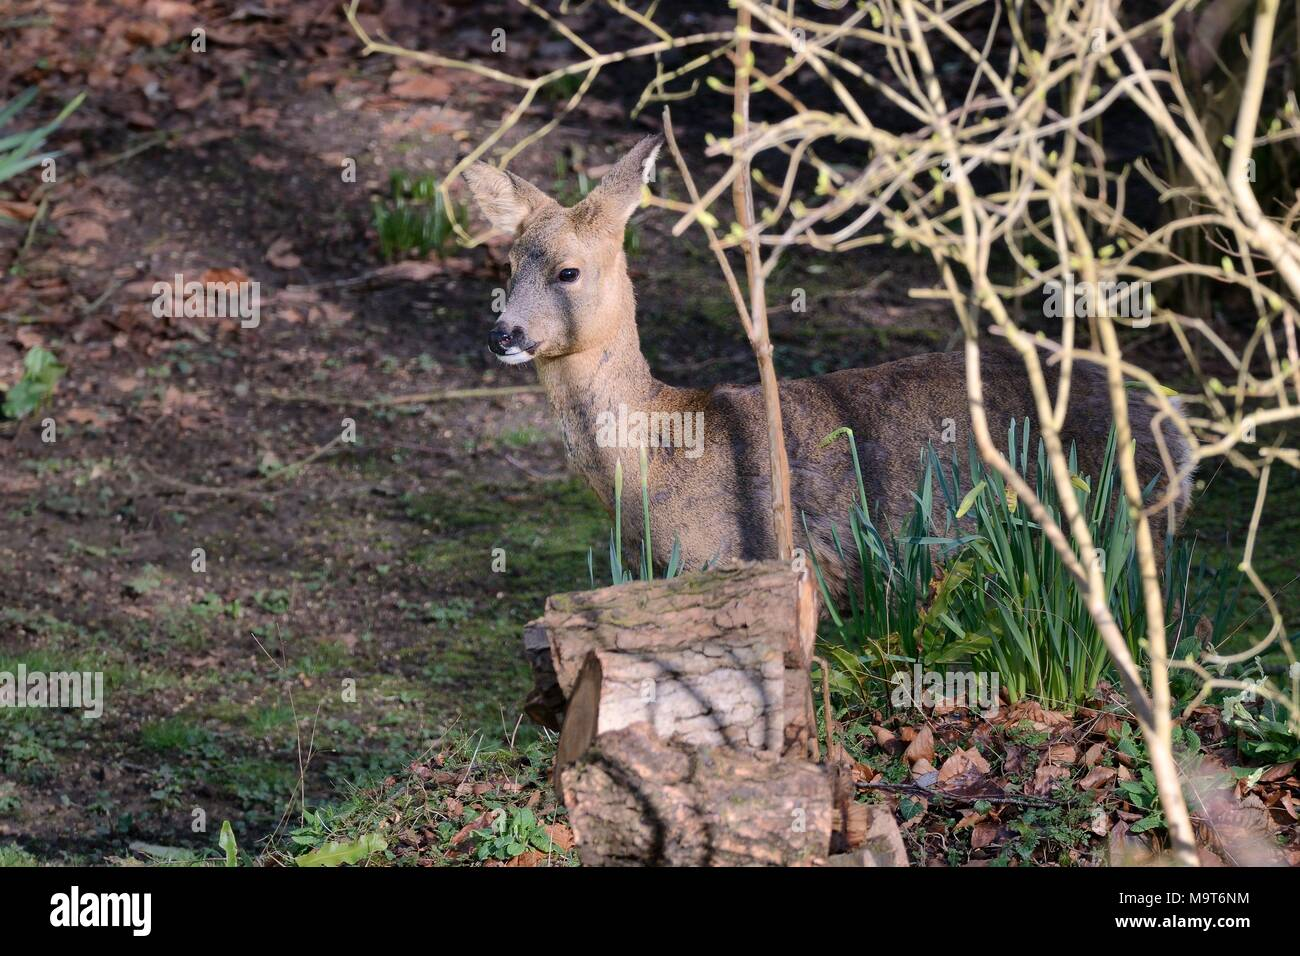 Roe deer (Capreolus capreolus) doe visiting a garden in morning sunlight, beside woodpile and daffodil clumps, Wiltshire, UK, March. - Stock Image